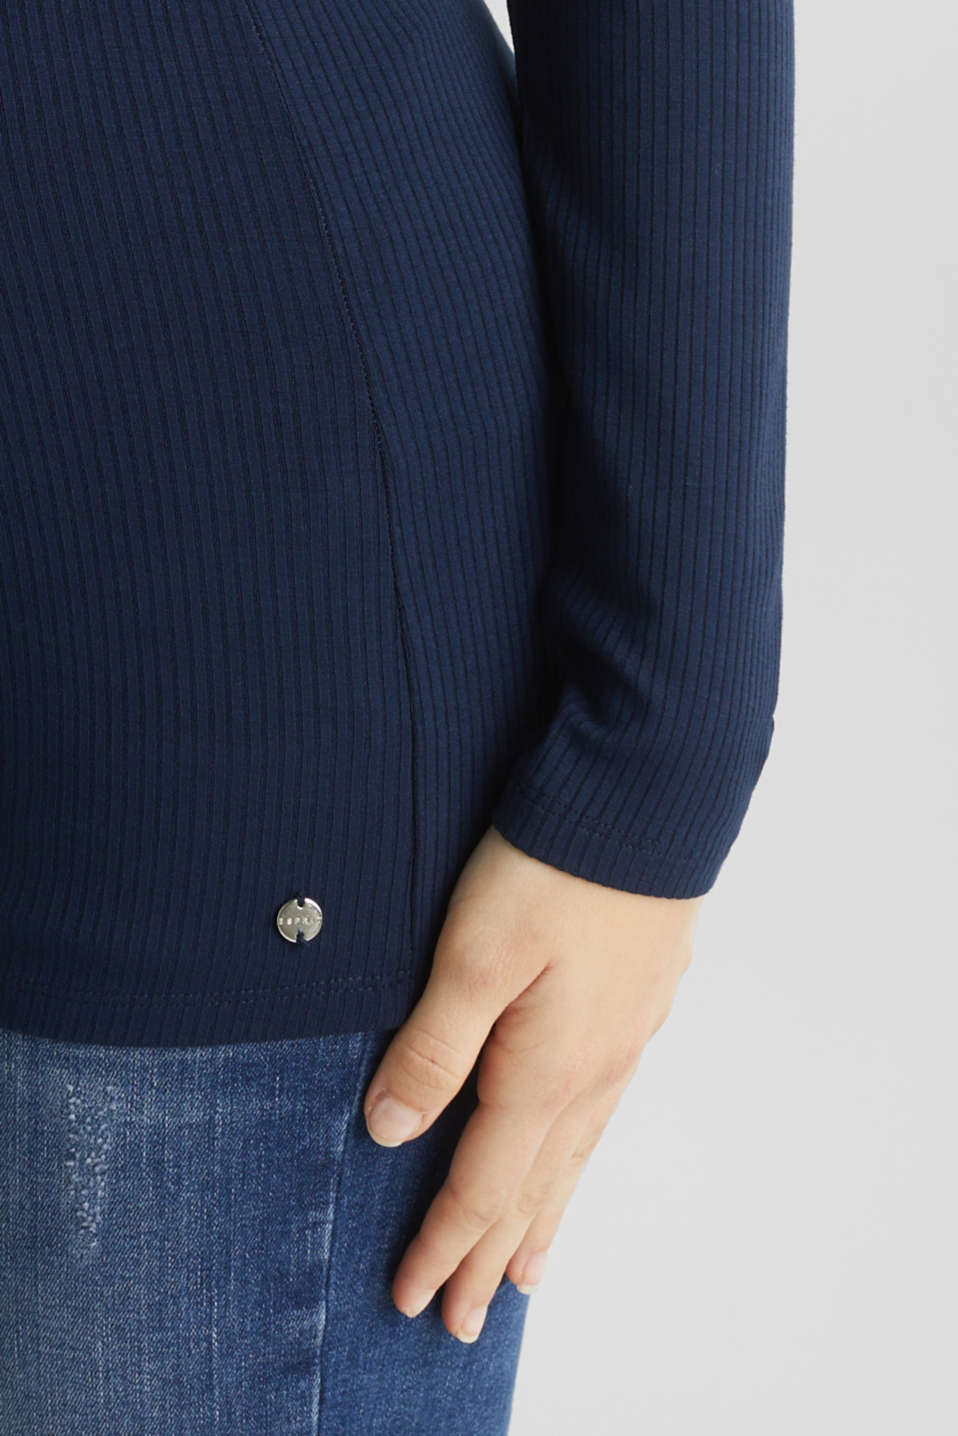 Ribbed long sleeve top with a button placket and stretch for comfort, LCNIGHT BLUE, detail image number 5